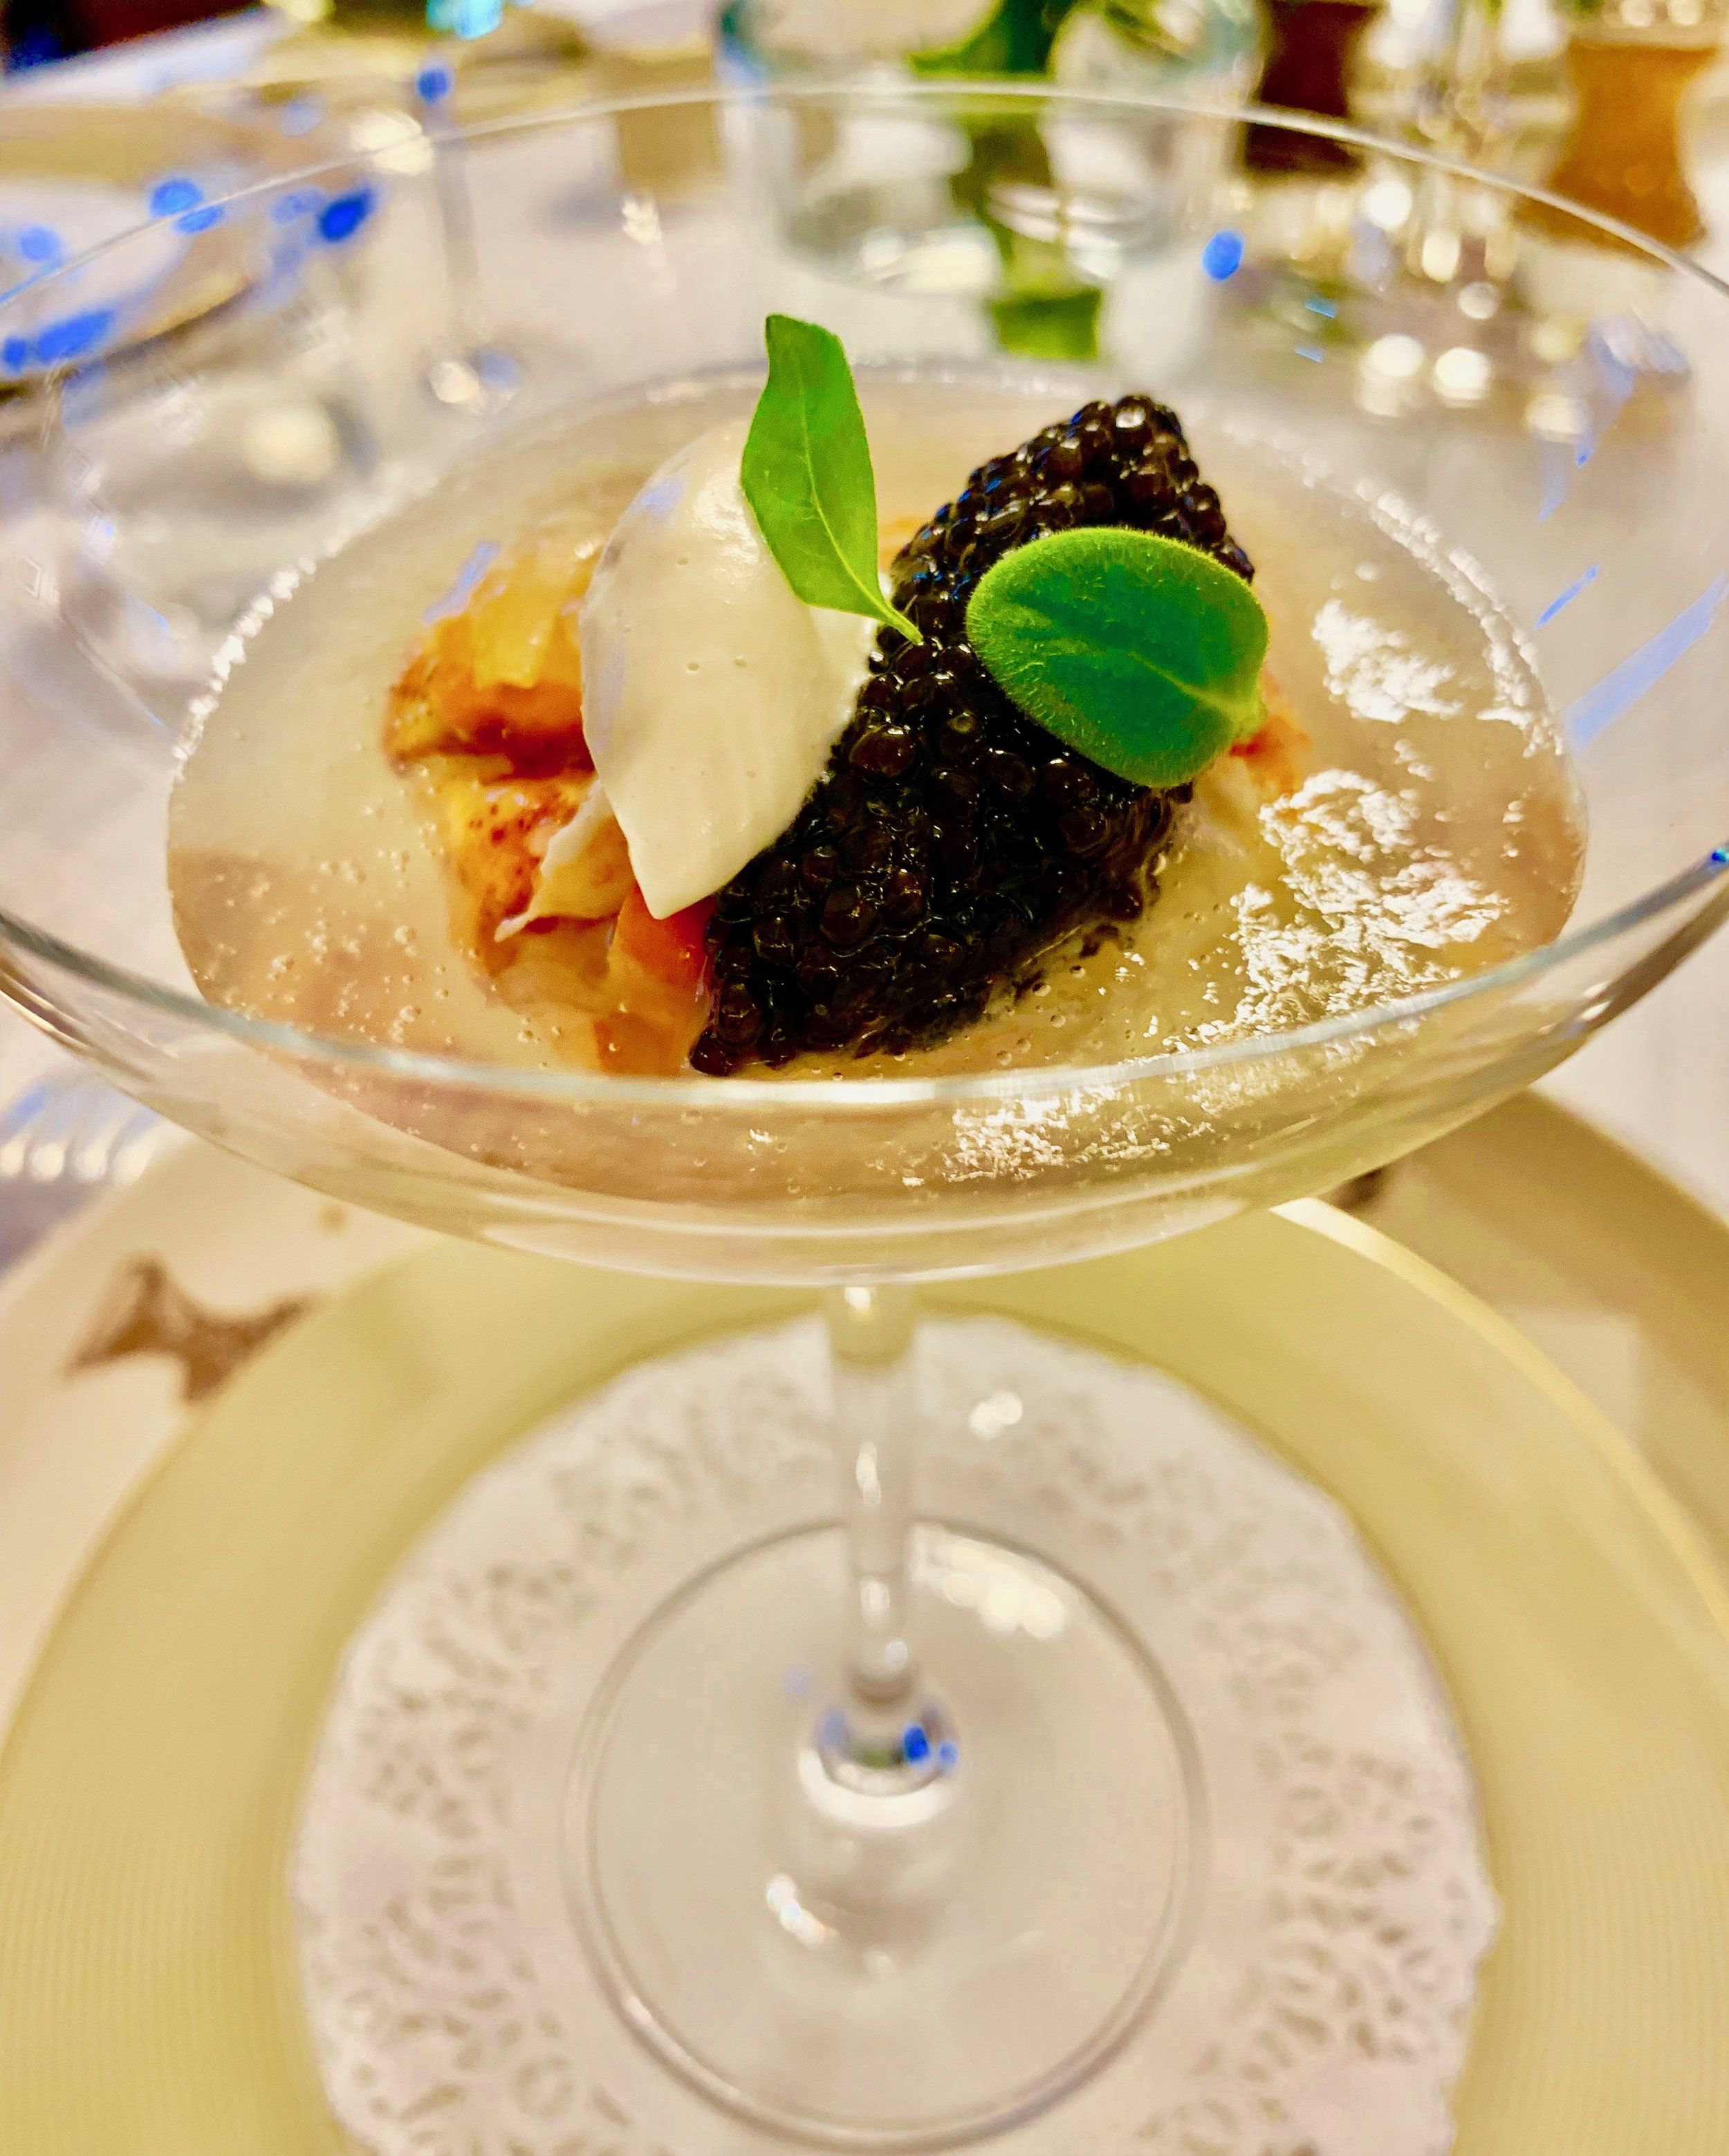 Lobster in an iced Pouilly-Fuissé court-bouillon with lemongrass and caviar